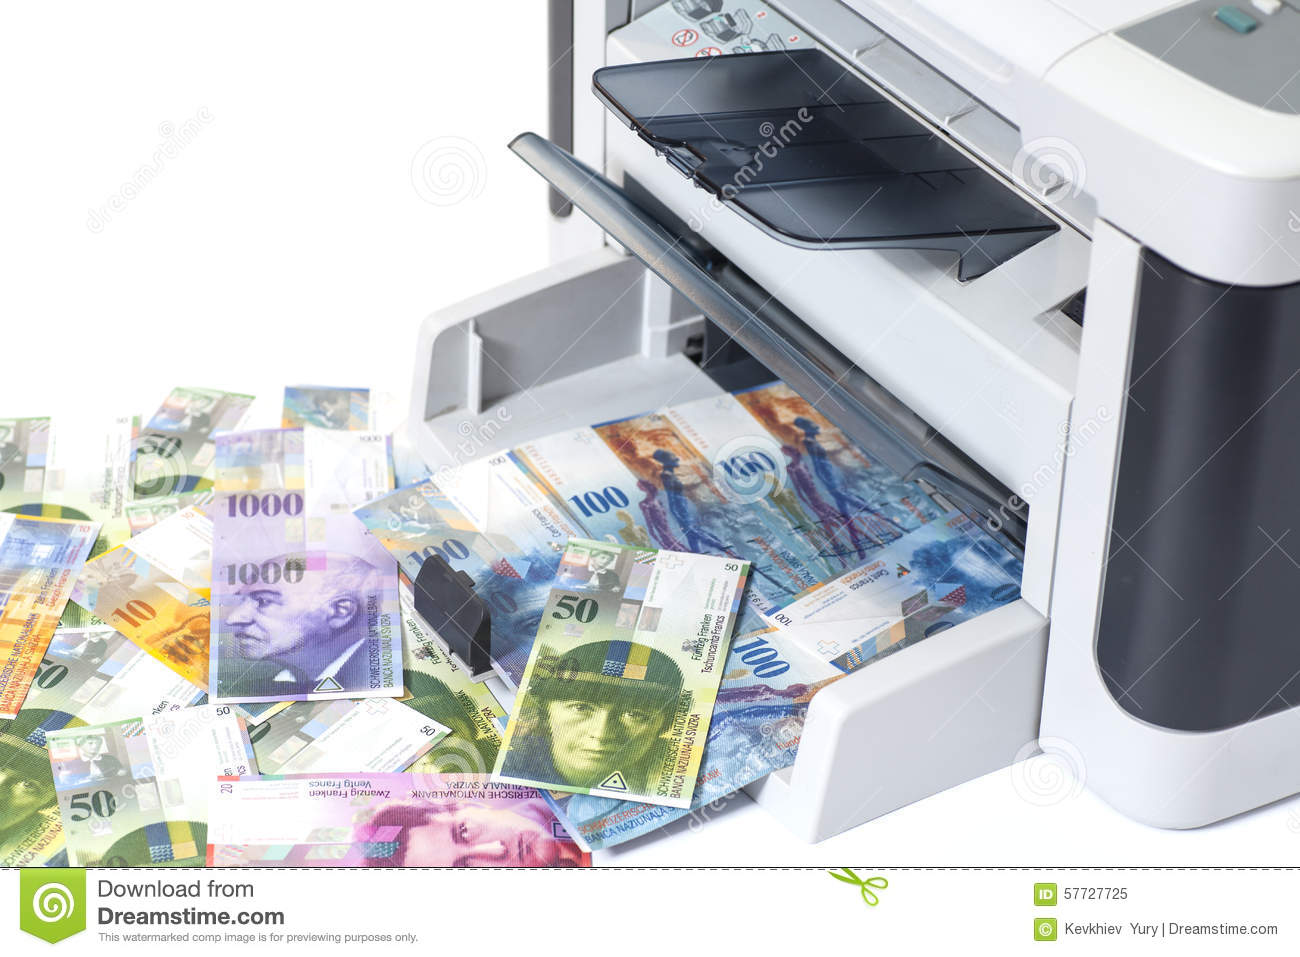 Currency Printing Bill Mint Francs Image Stock 57727725 Of Swiss Fake - Switzerland Printer